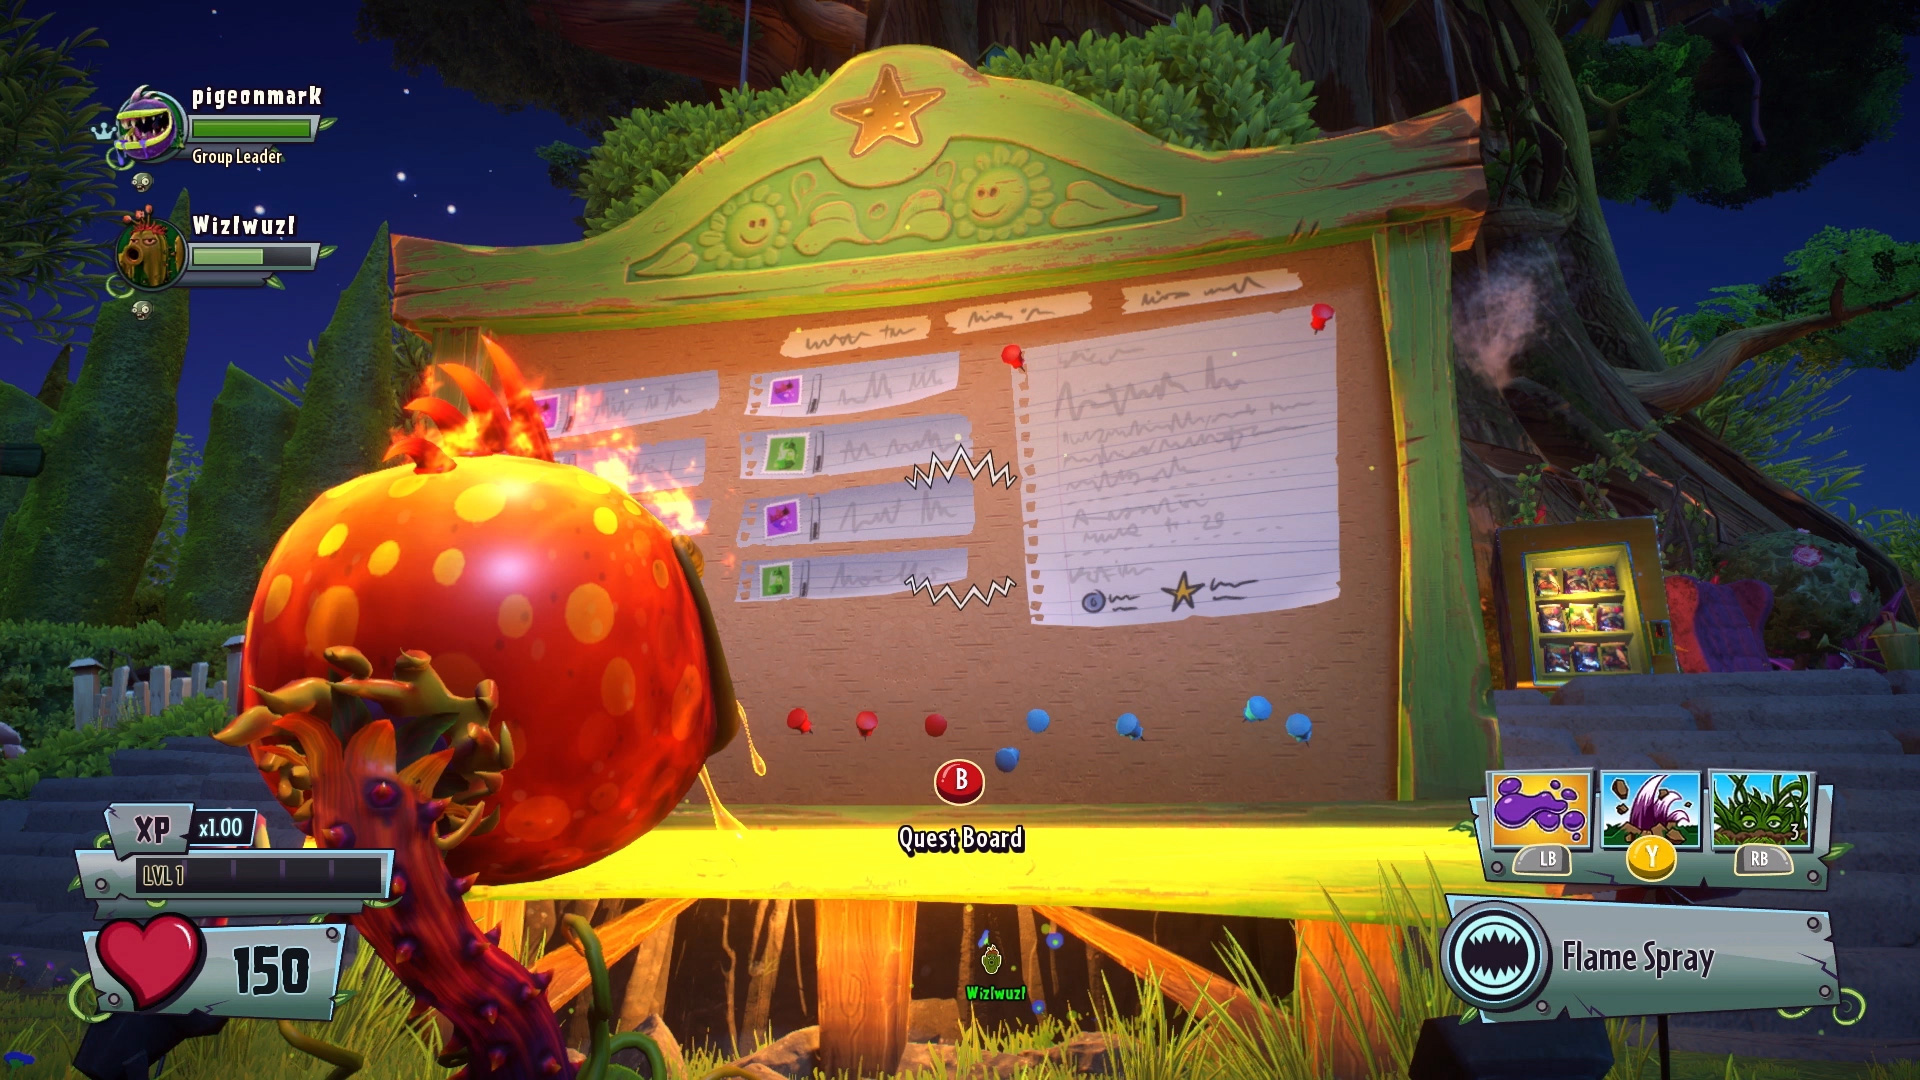 Xp and progression in plants vs zombies garden warfare 2 for Plants vs zombies garden warfare 2 2 player